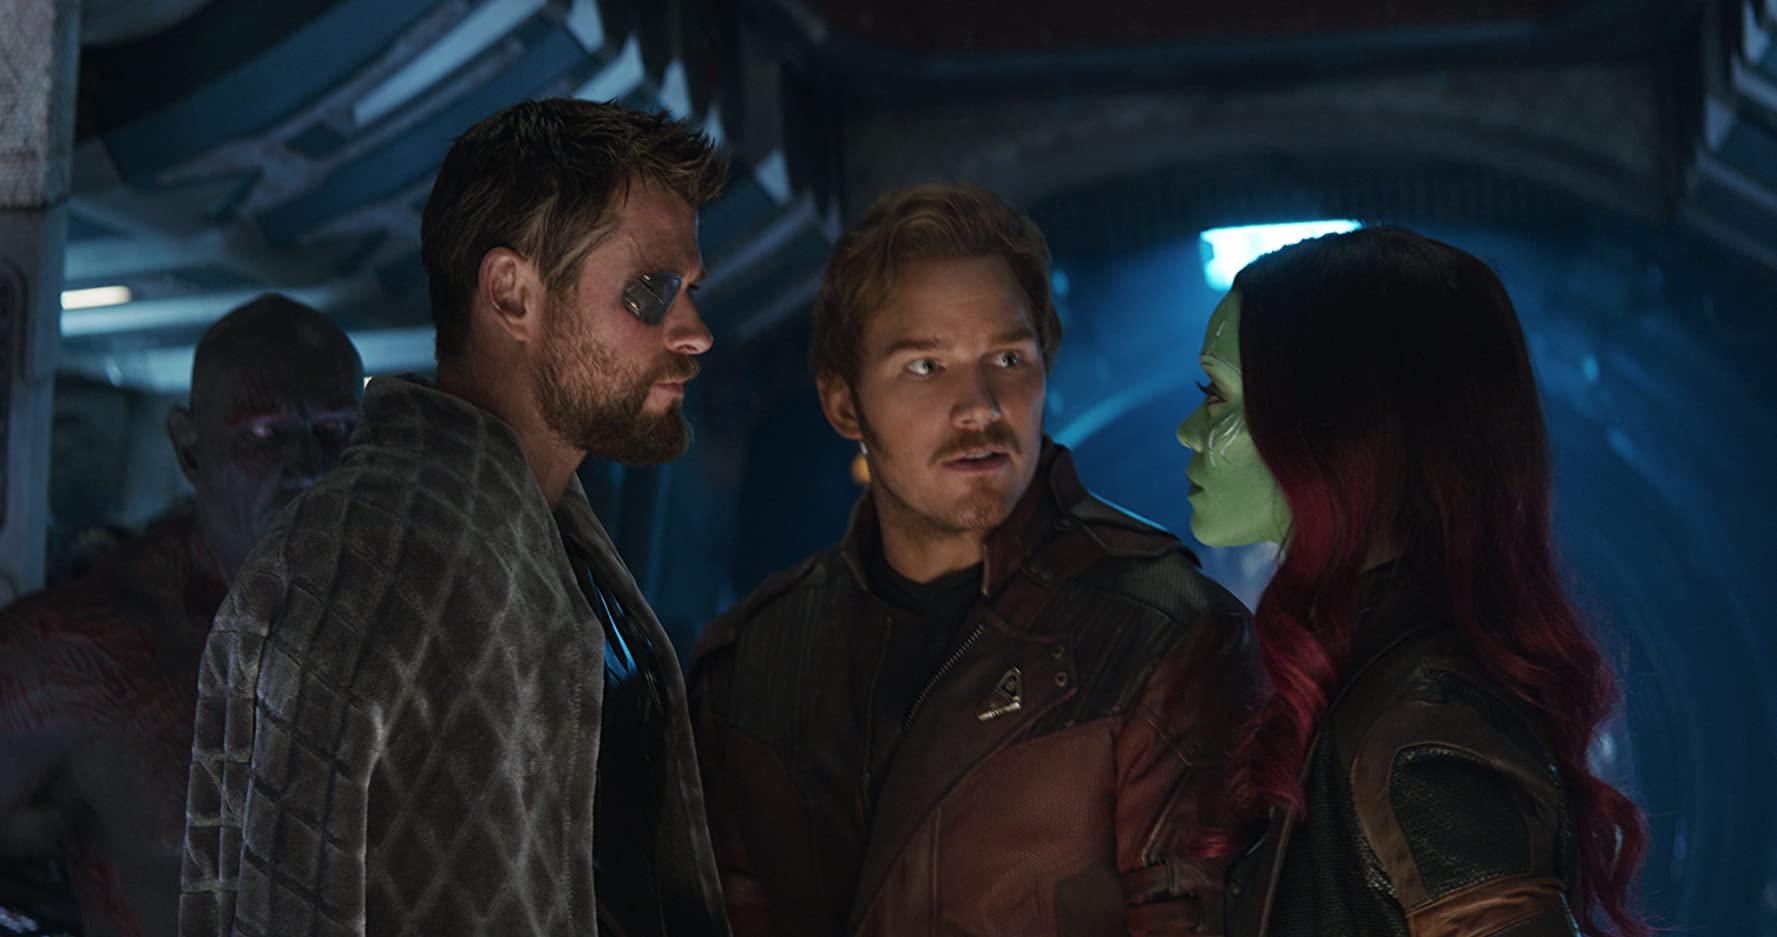 Chris Pratt, Zoe Saldana, Chris Hemsworth, and Dave Bautista in Avengers: Infinity War (2018)